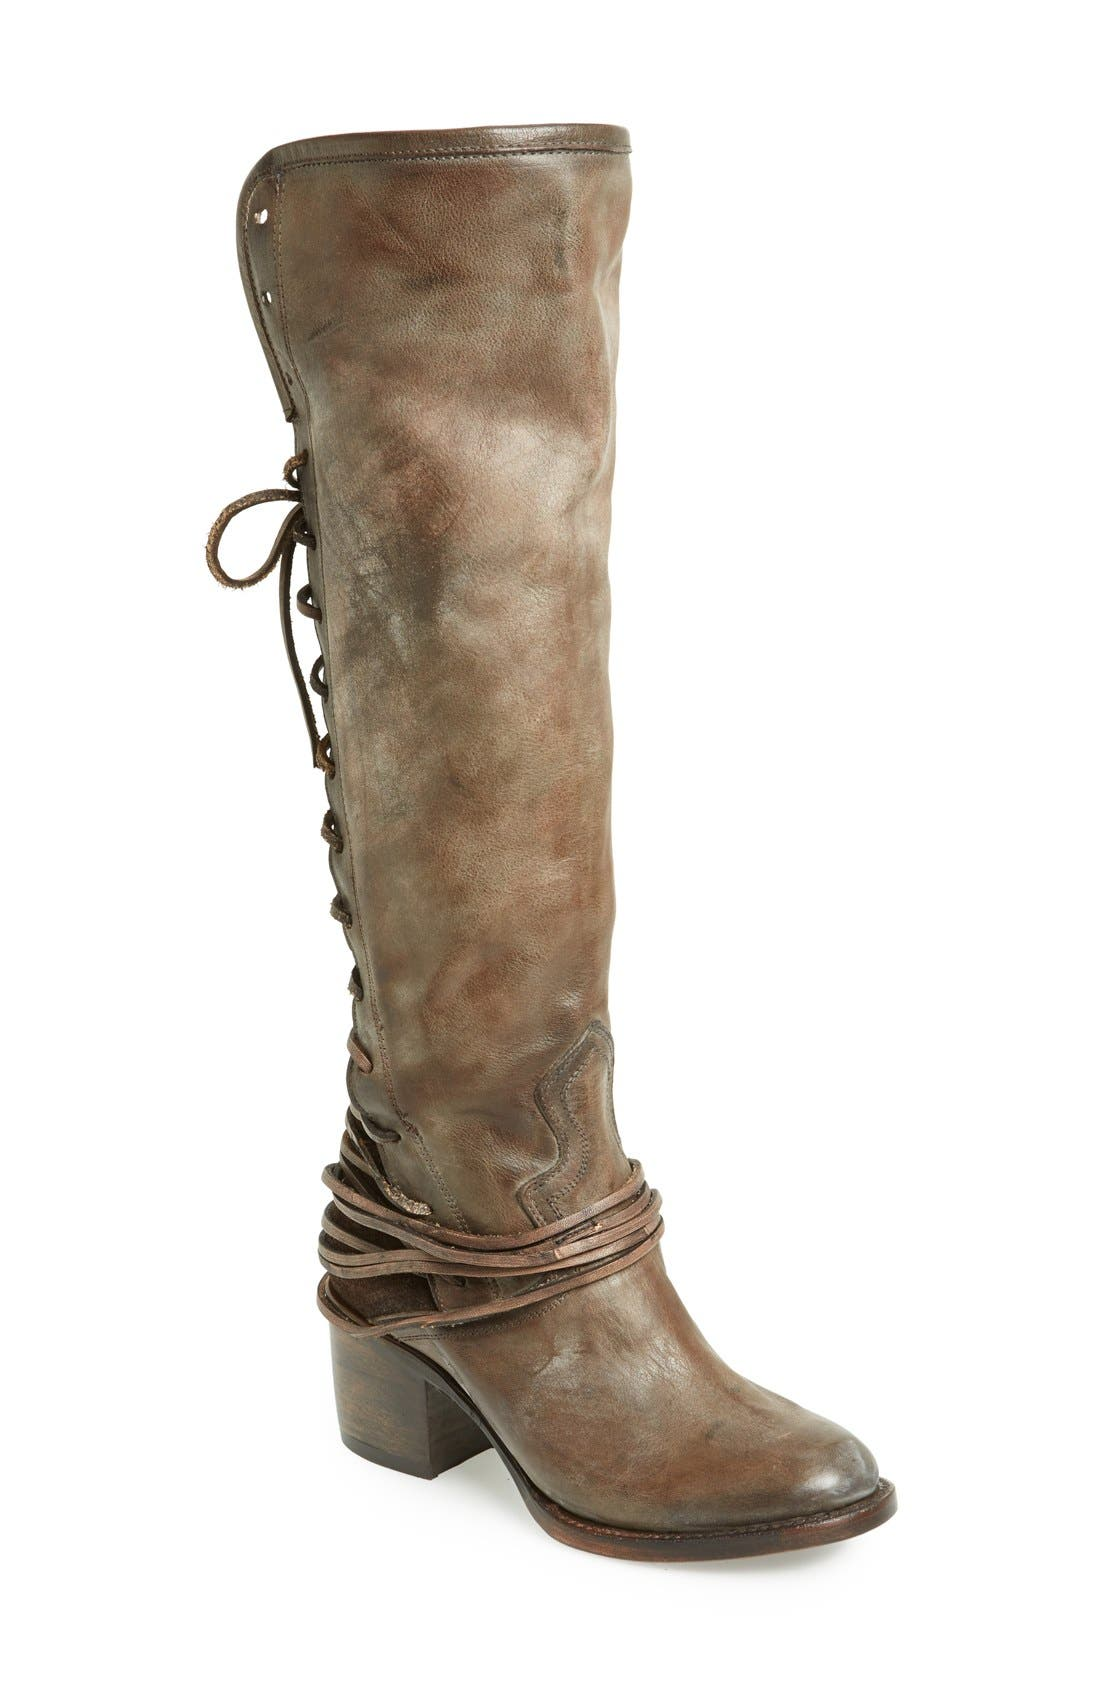 Main Image - Freebird by Steven 'Coal' Tall Leather Boot (Women)